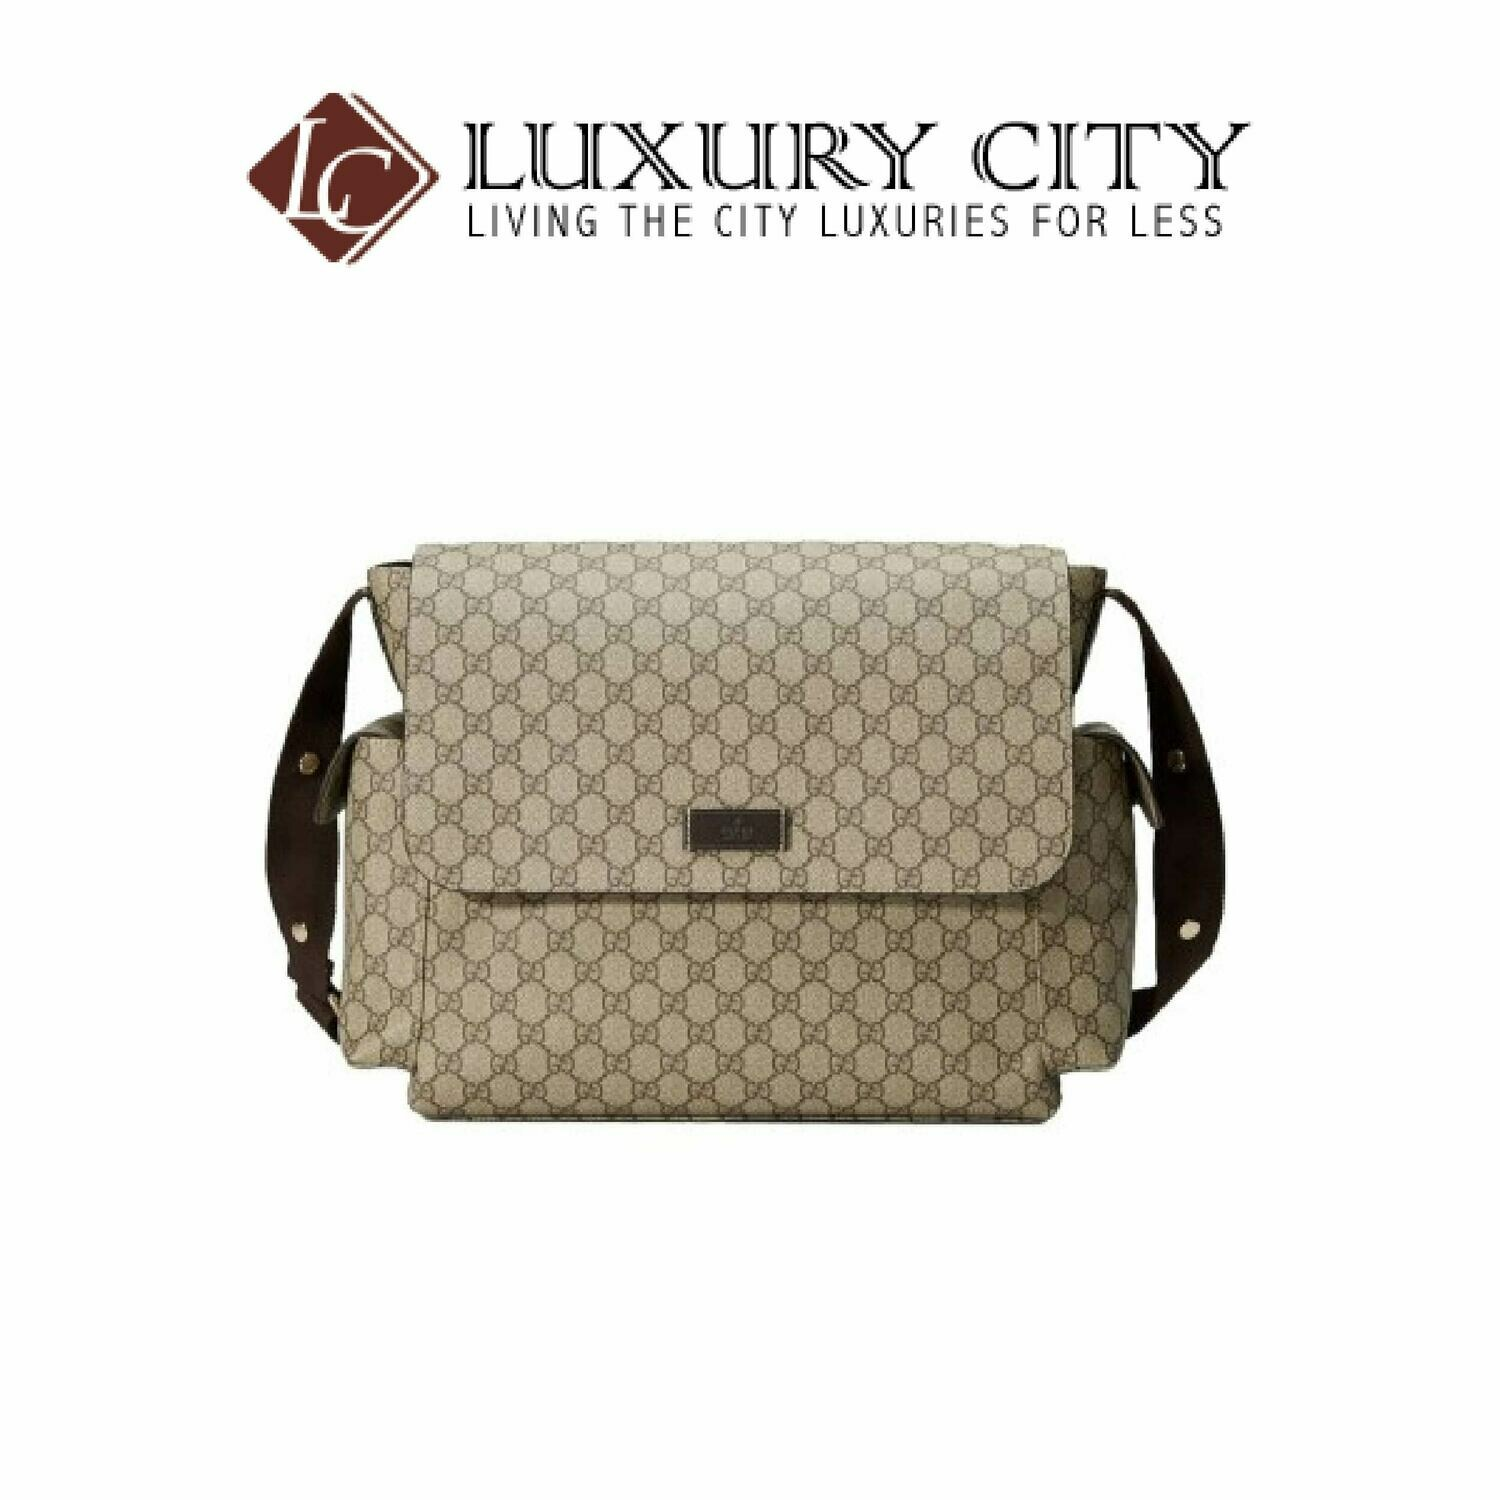 [Luxury City] Gucci GG Supreme Baby Bag Light Brown/Sand Gucci- 211131